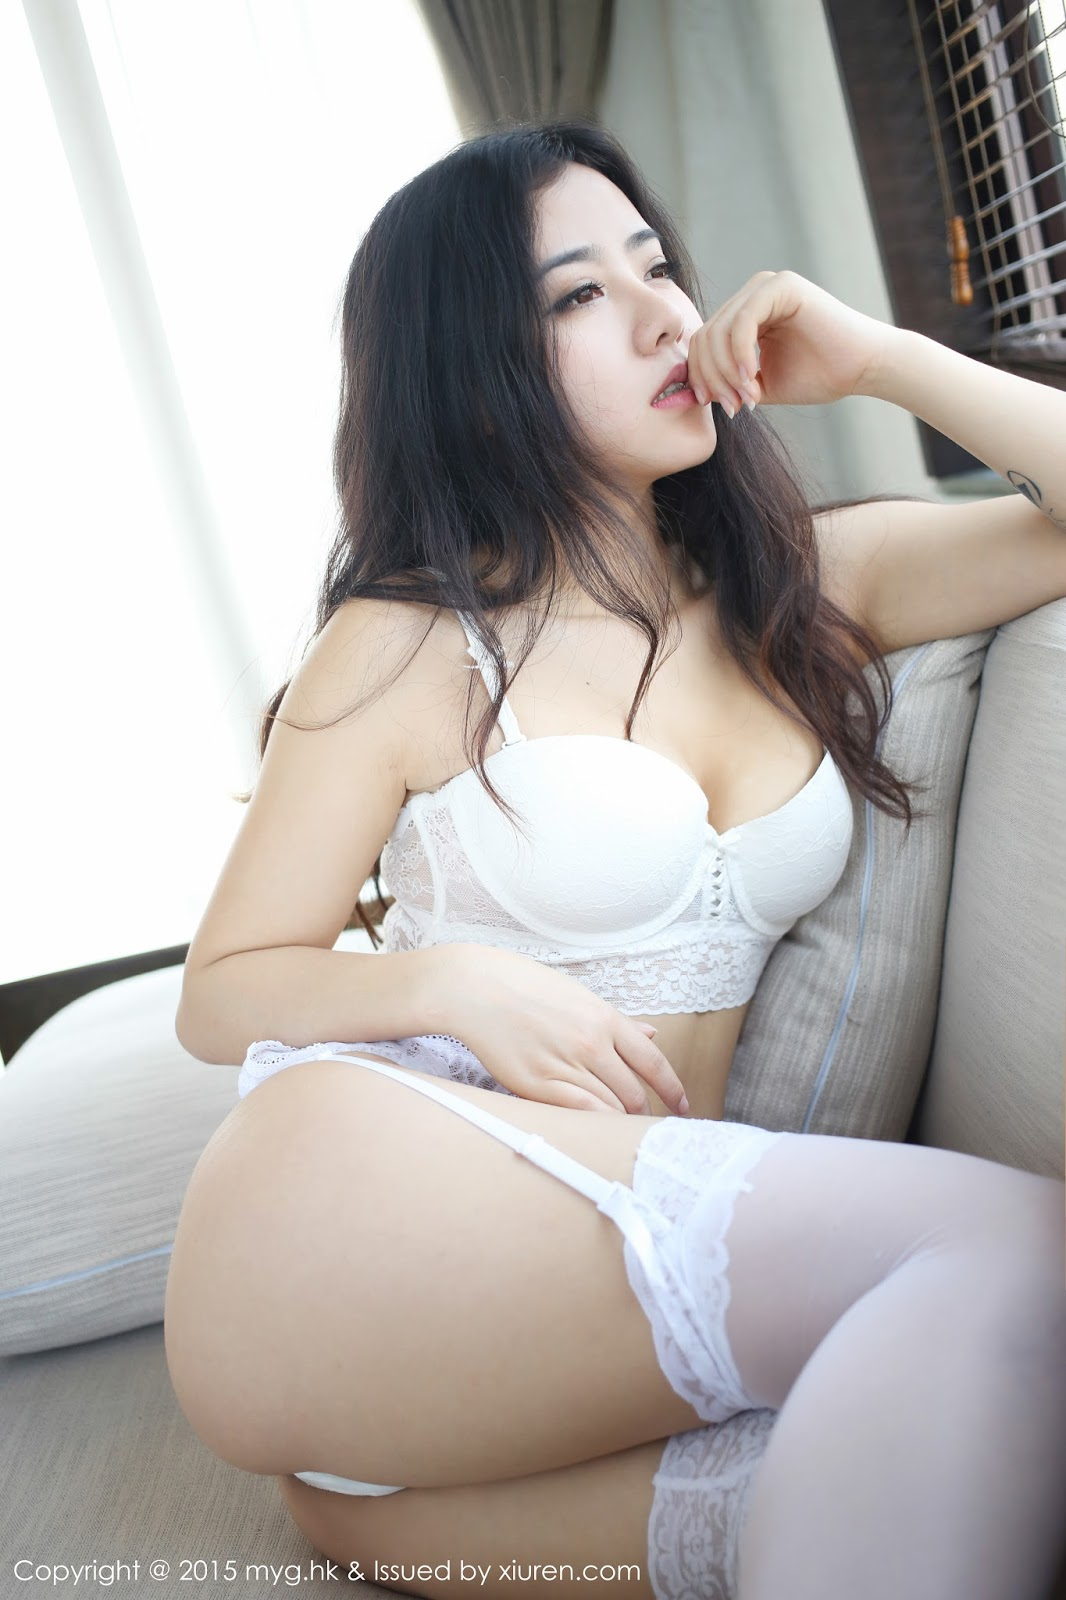 Cute Korean Girl Hd Wallpaper Download My Daily Sexy Asian Model Girls Mygirl Vol 111 Manuela